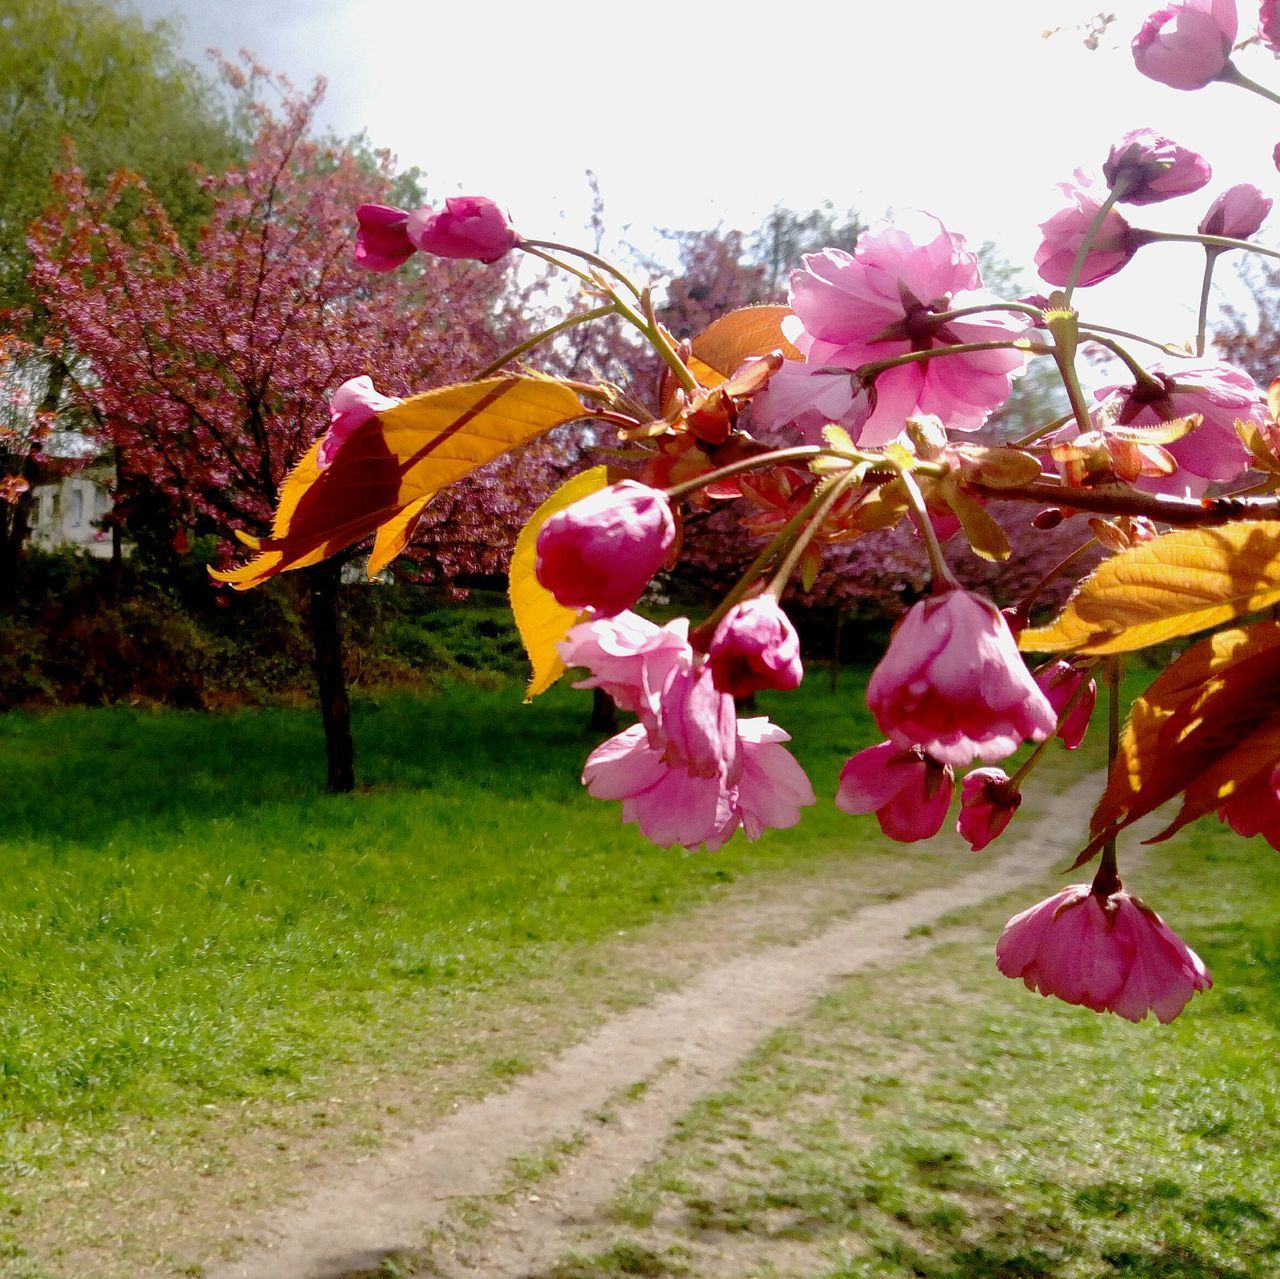 Growth No People Beauty In Nature Hanging Outdoors Tree Nature Day Plant Pink Color Flower Branch Freshness Sky Close-up Spring Time Cherry Blossoms Cherry Tree Pinkflower Pink In Nature Simple Things In Life Taking Photo Beauty In Ordinary Things Flower Head Fragility